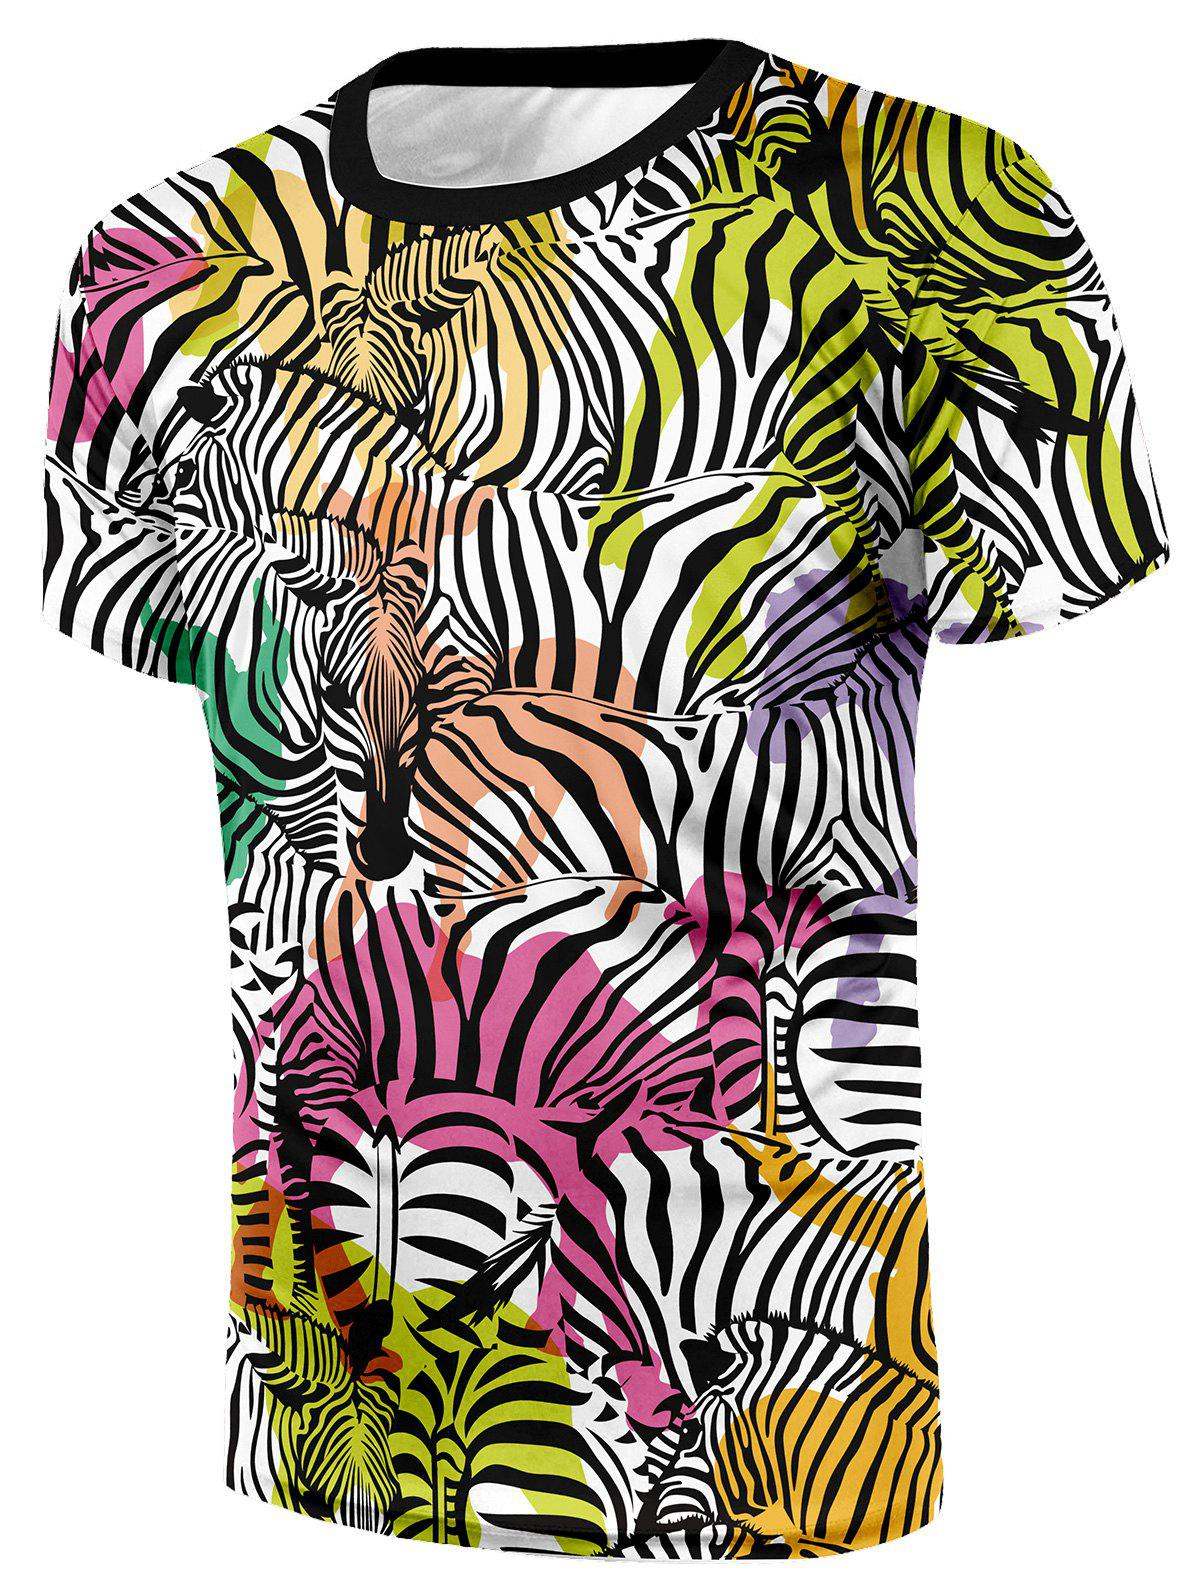 Zebra Camel Print Short Sleeve T-shirt - COLORMIX XL